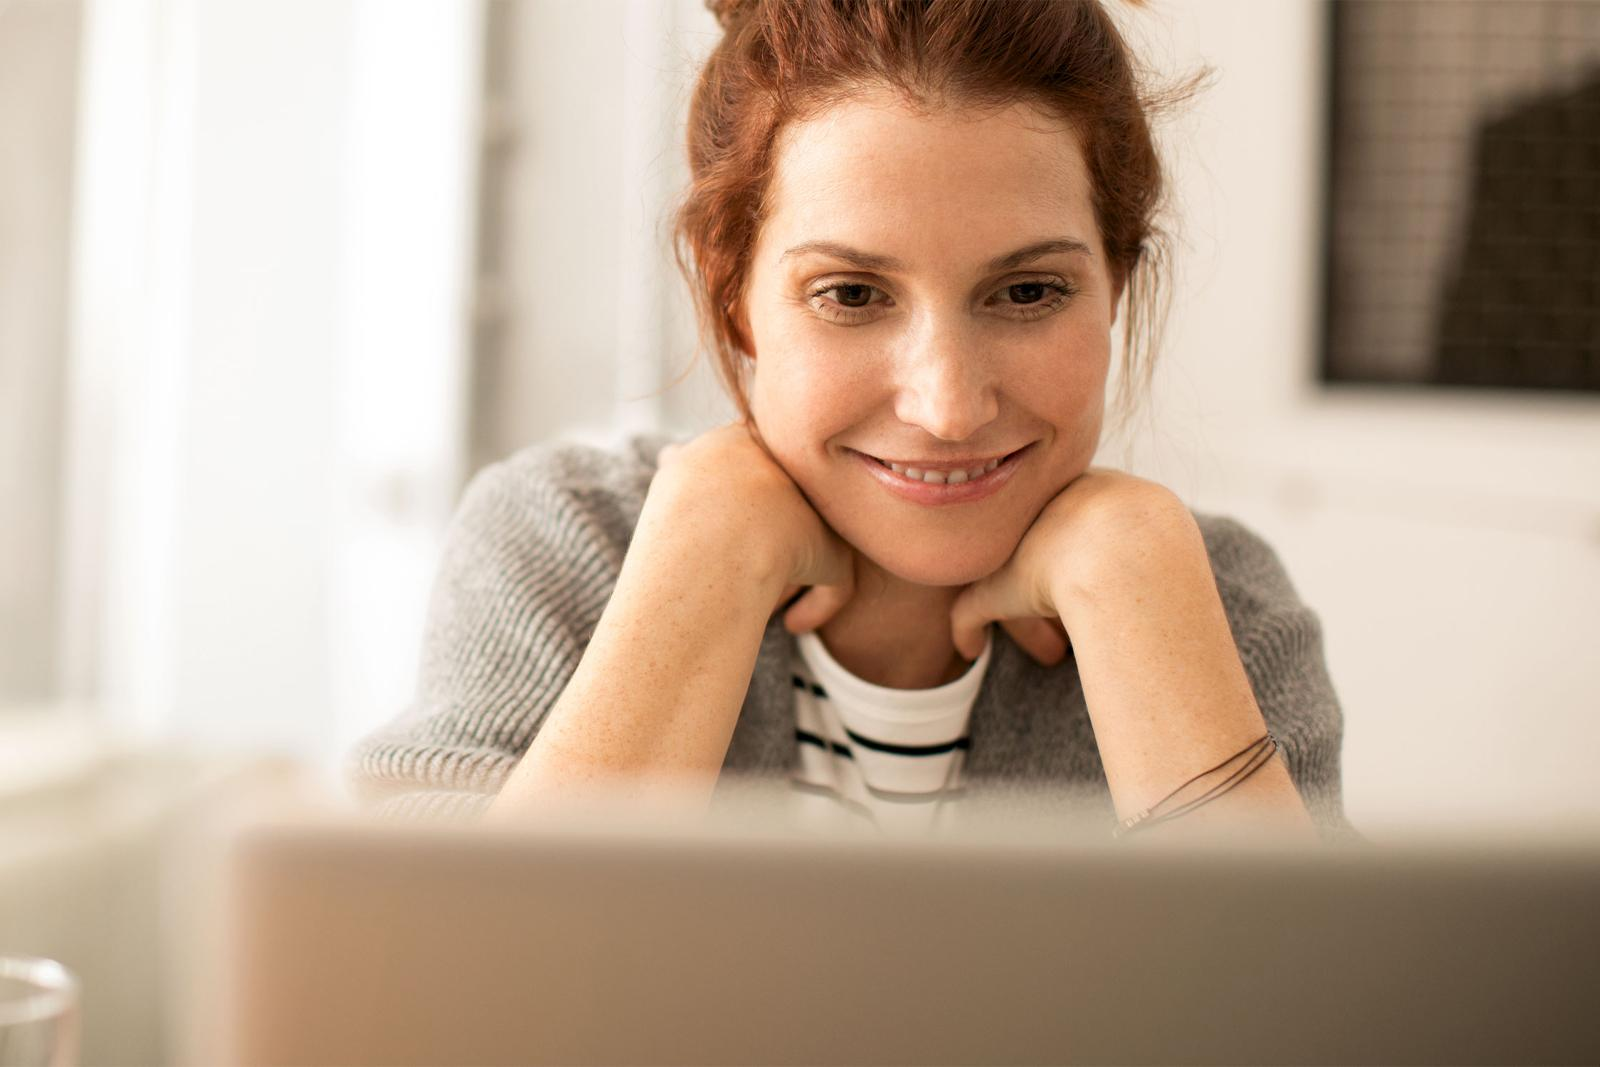 young-woman-smiling-sitting-in-front-of-computer-pc-teaser.jpg